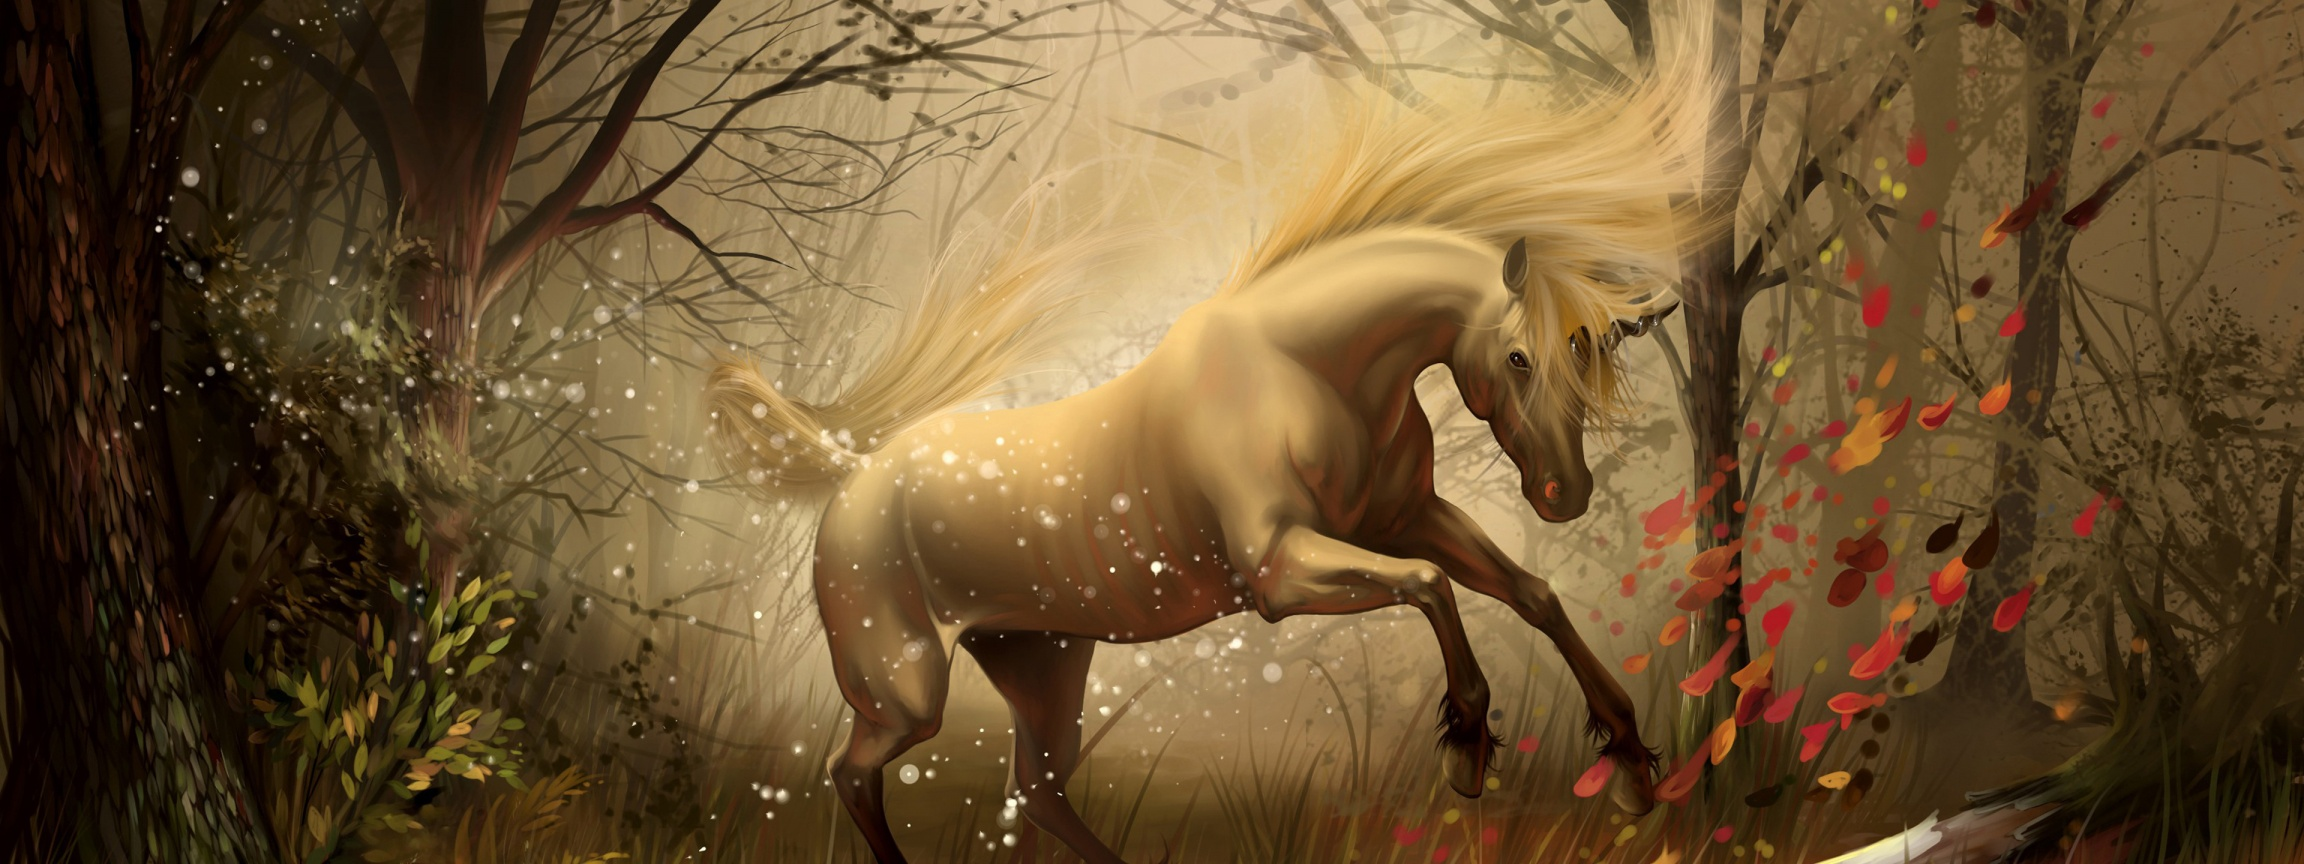 Unicorn In Fantasy Autumn